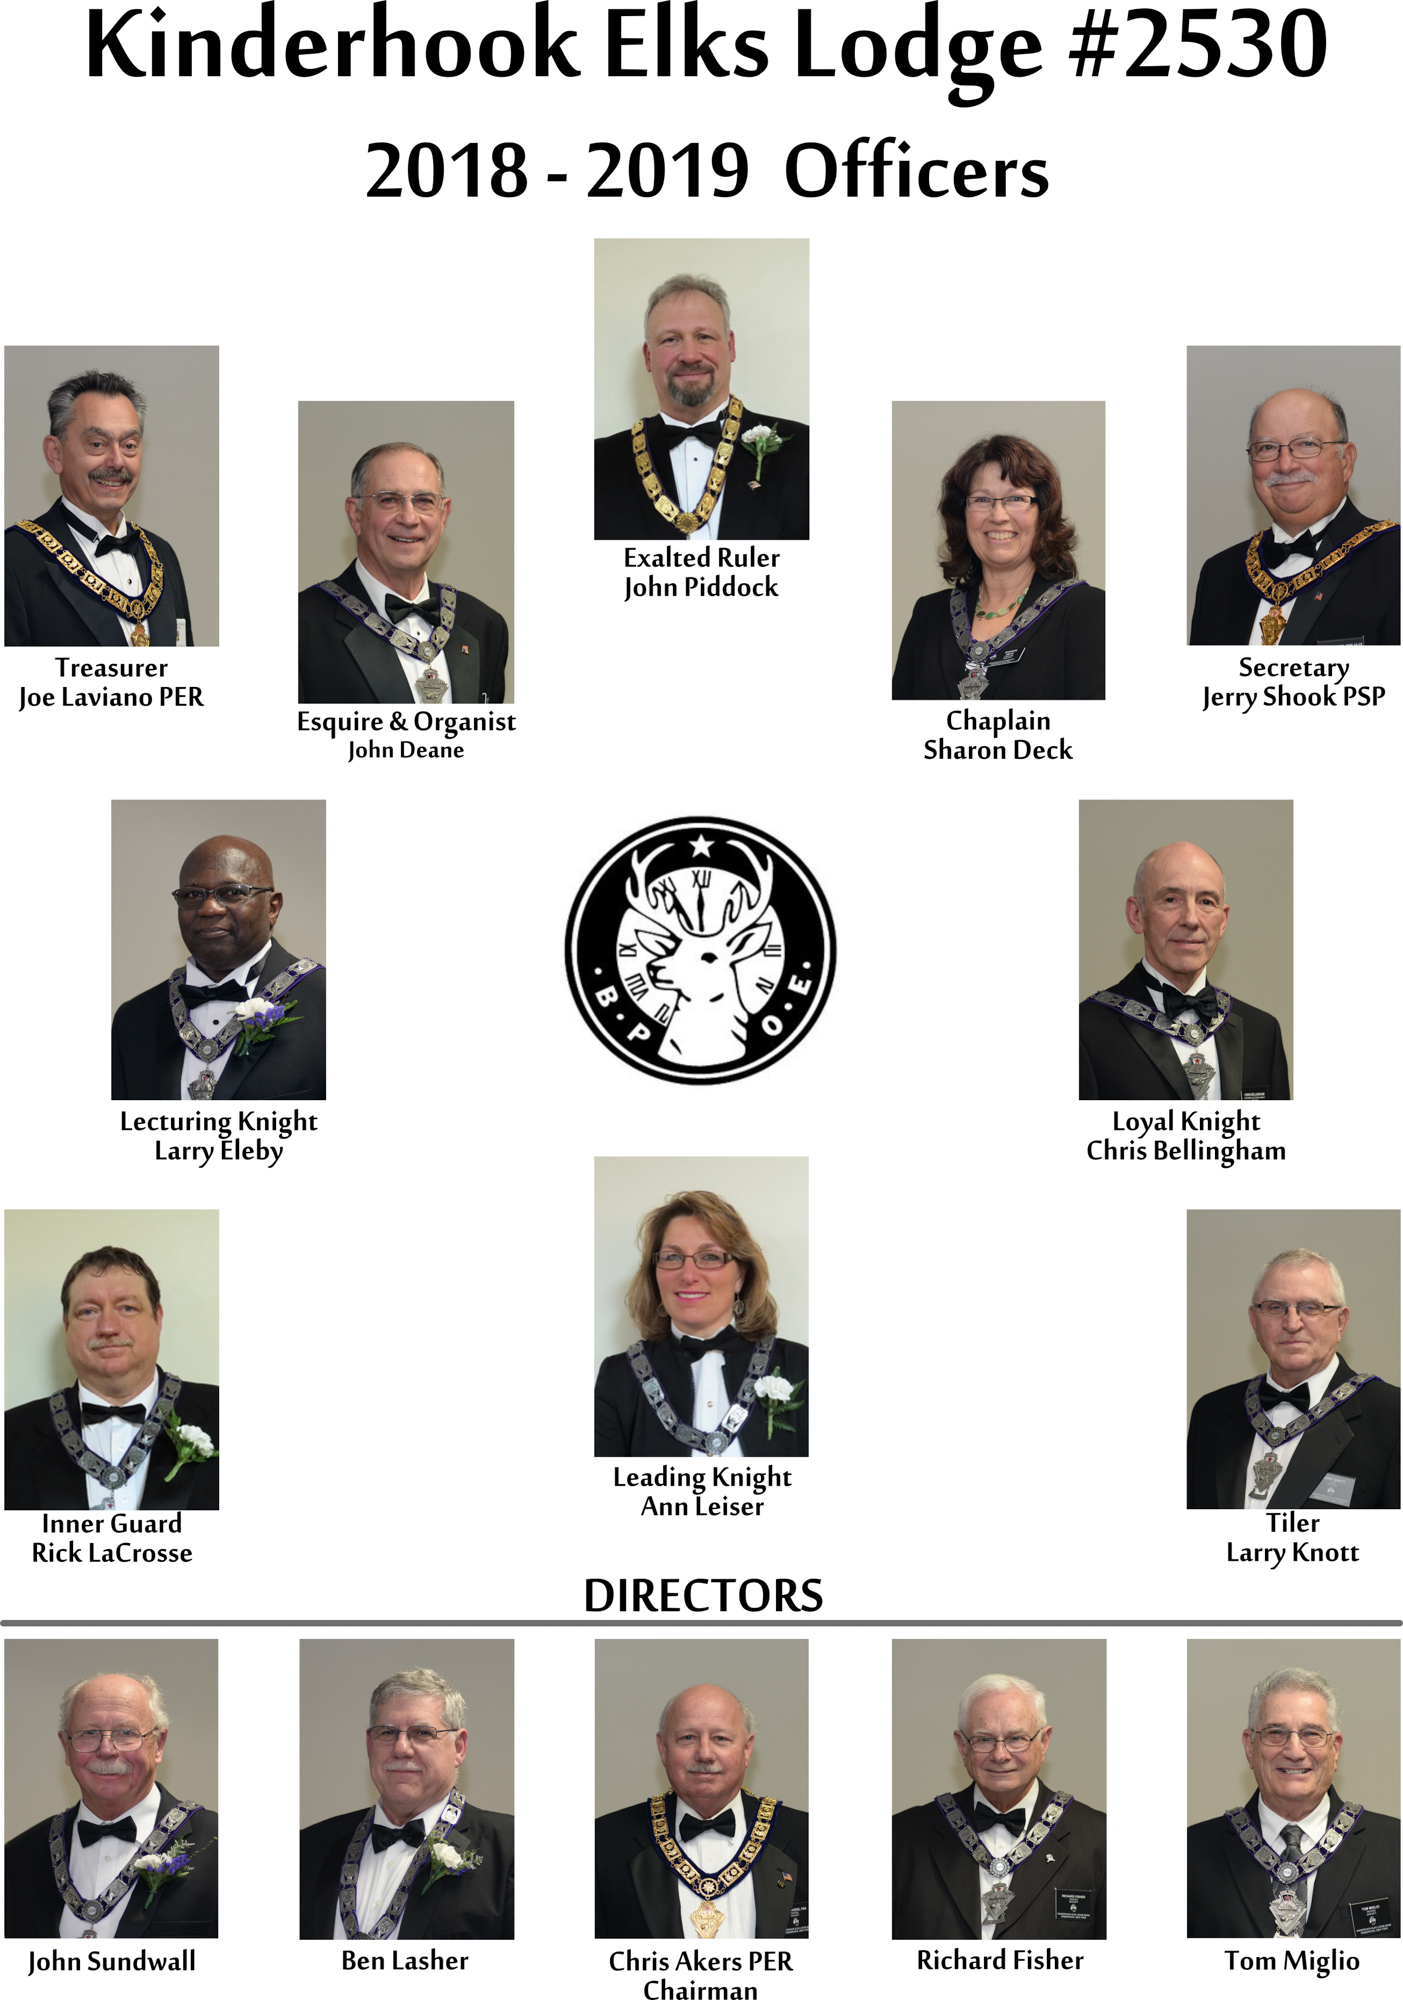 Kinderhook Elks Lodge Officers 2018